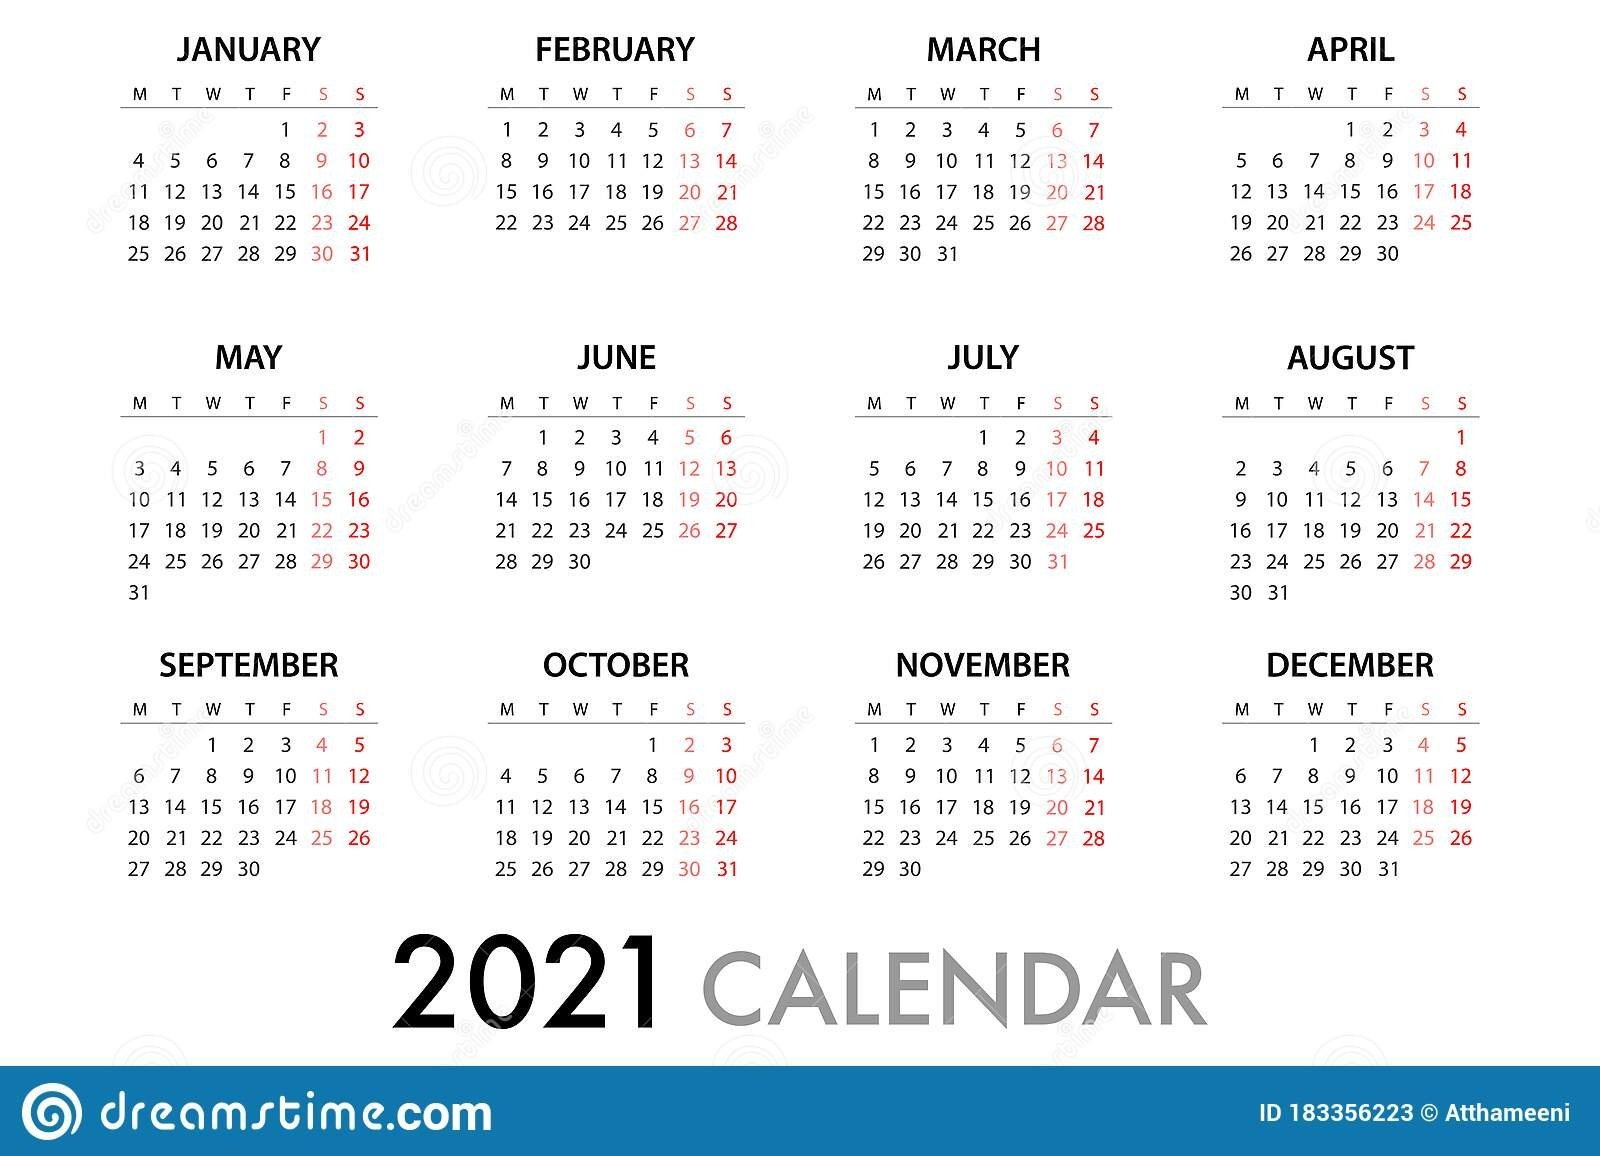 Calendar Planner 2021 Week Starts Monday. Simple Vector Template Eps 10 Stock Illustration pertaining to Calendar With Numbered Days 2021